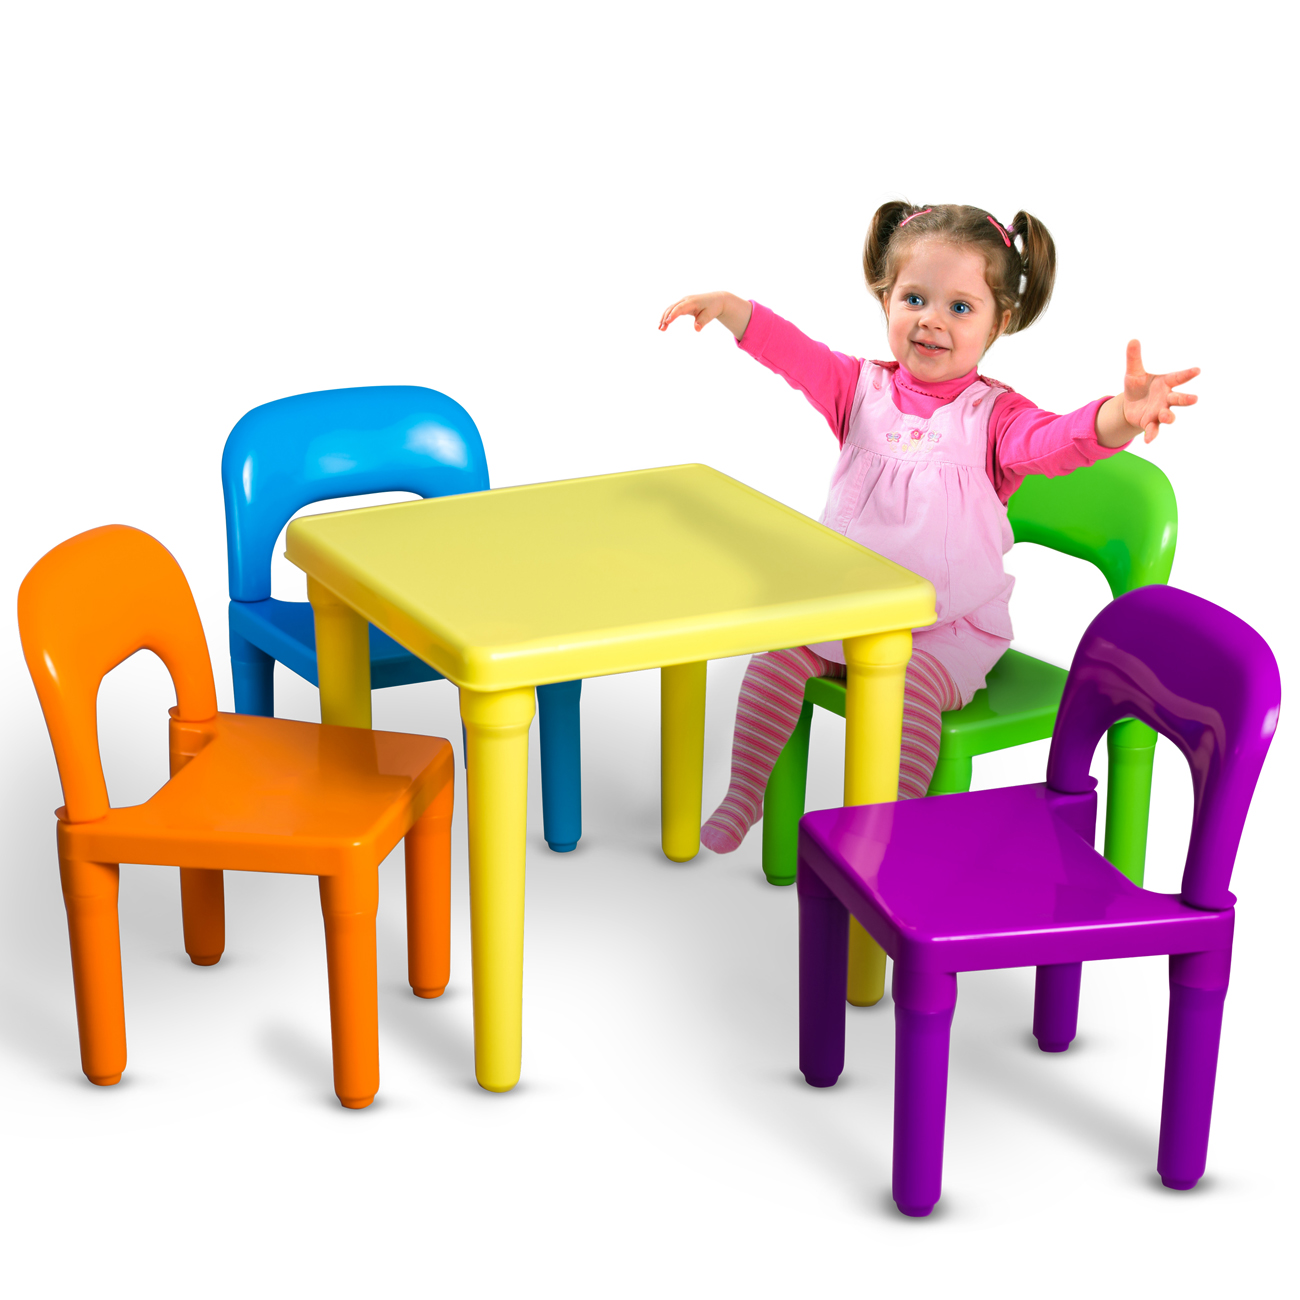 Den Haven Kids Table and Chairs Play Set Colorful Child Toy